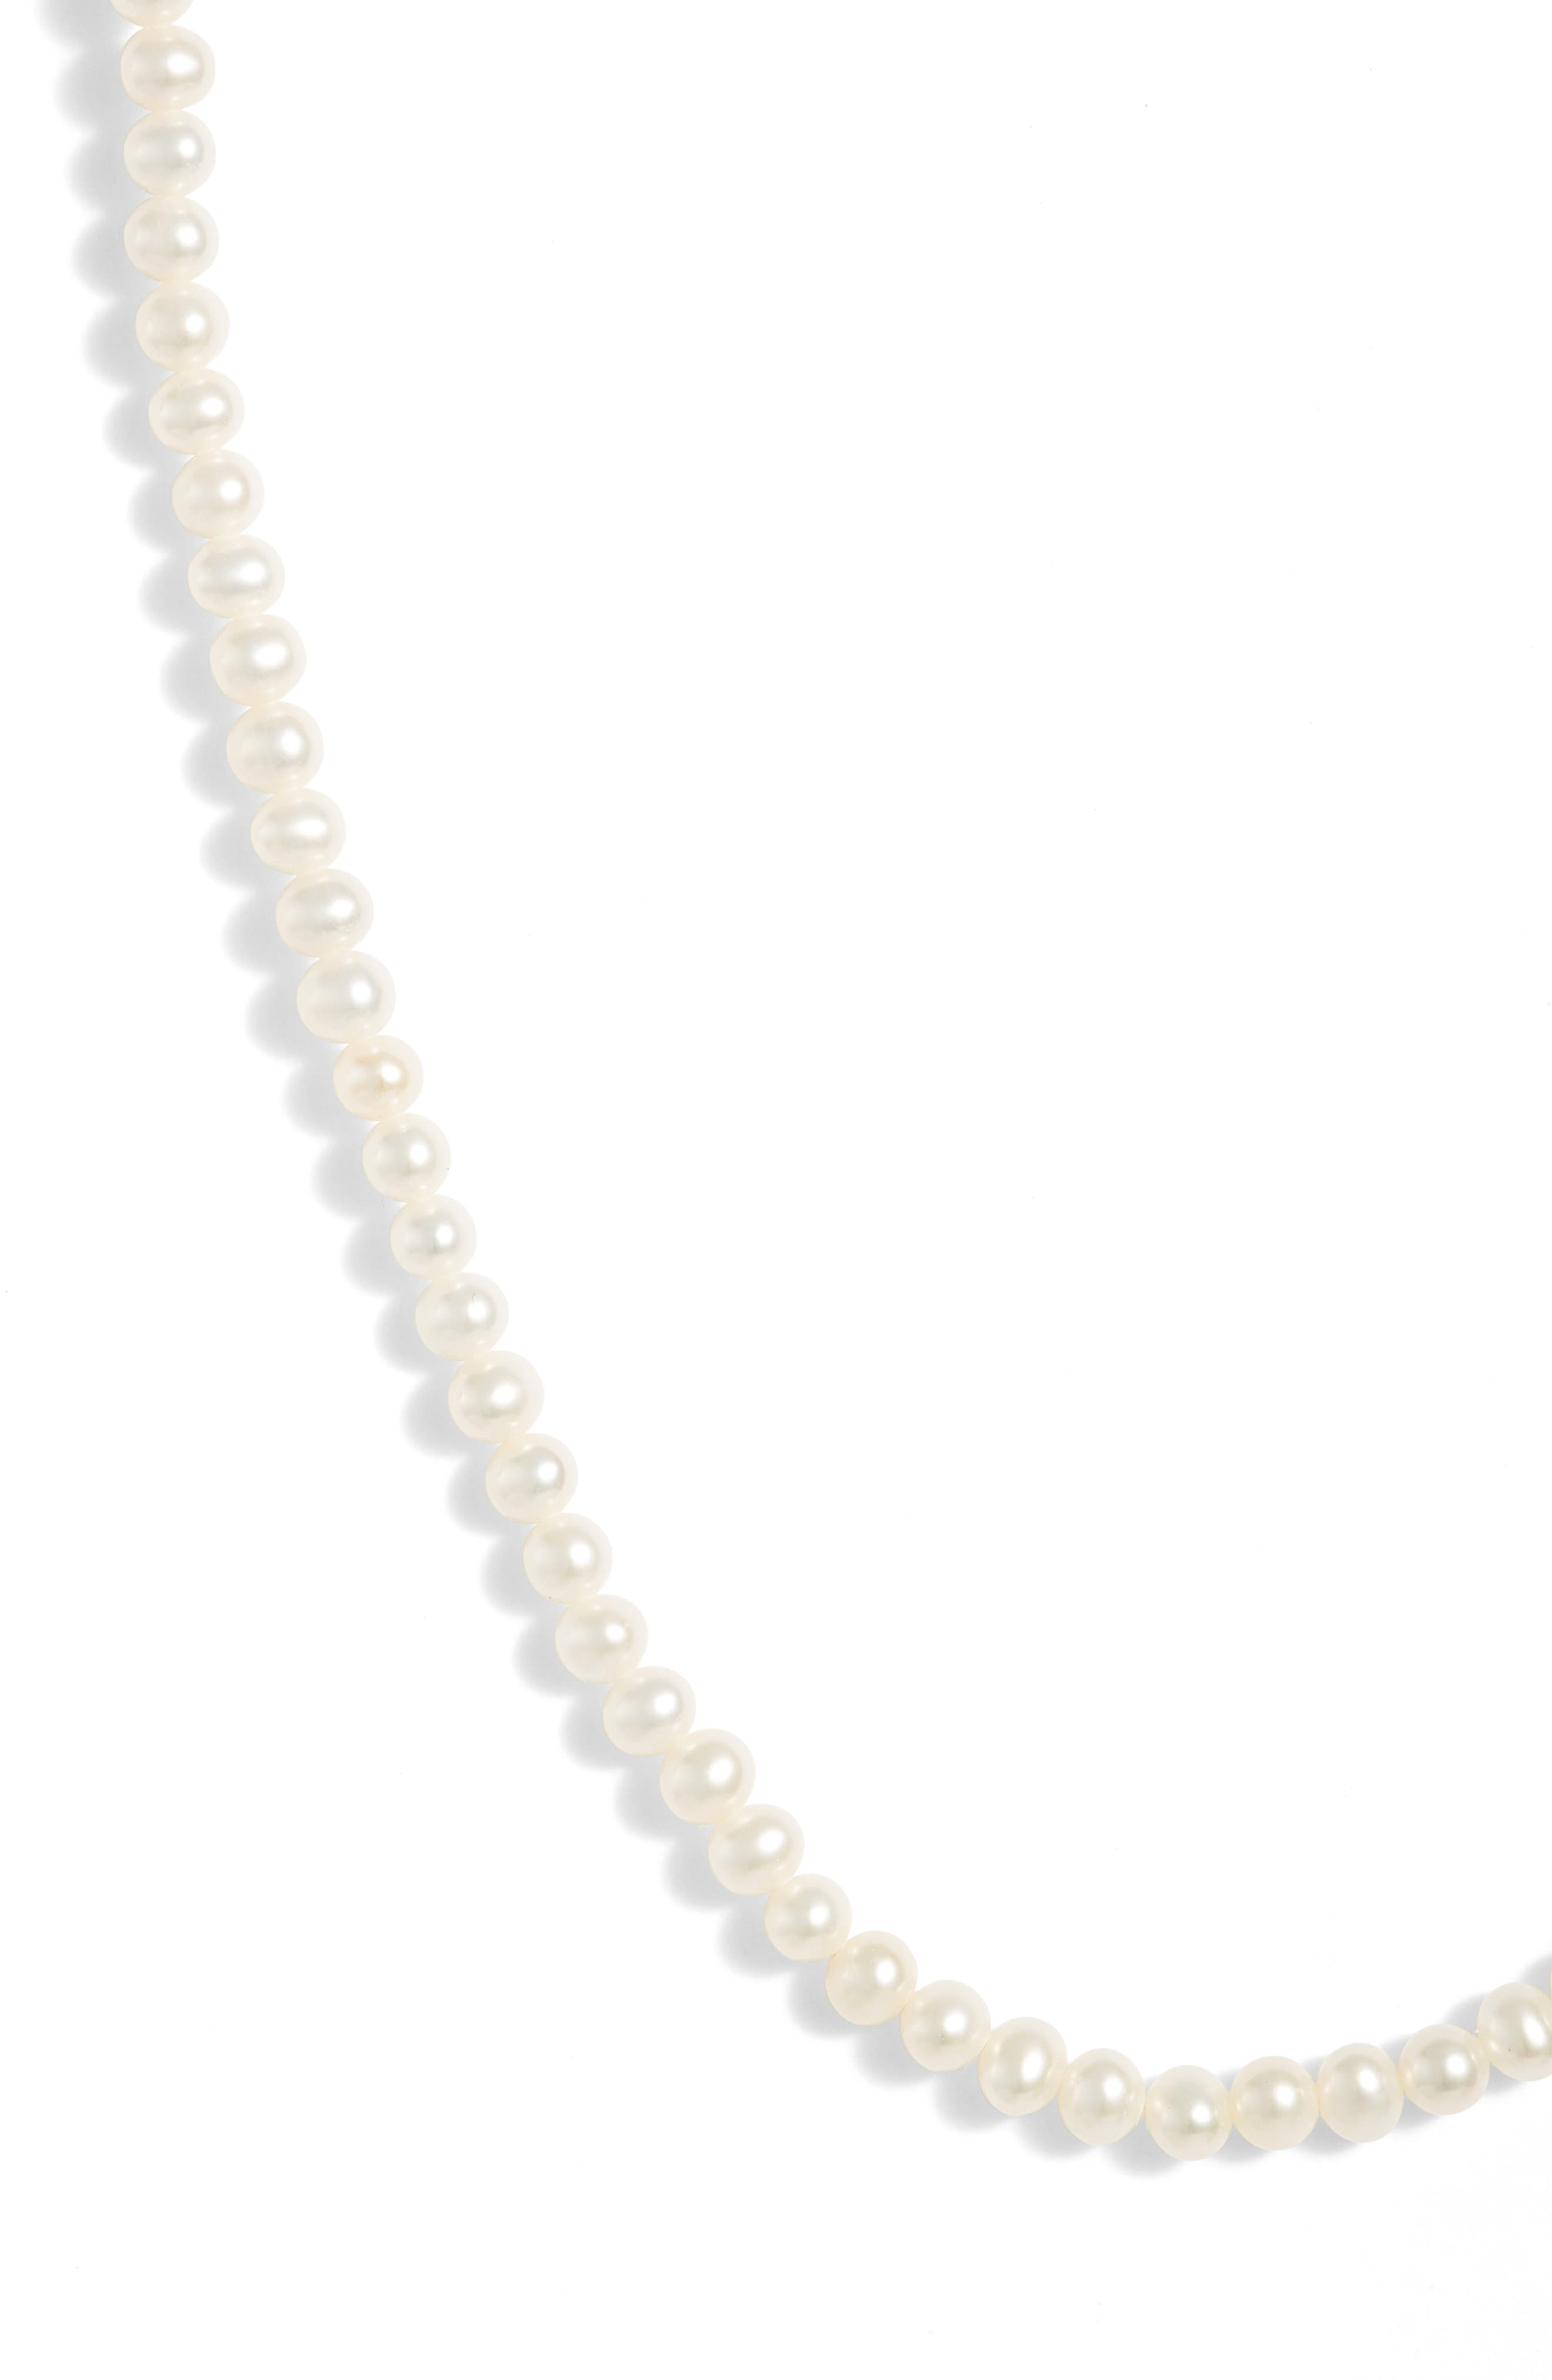 Pearl Short Strand Necklace,                             Main thumbnail 1, color,                             YELLOW GOLD